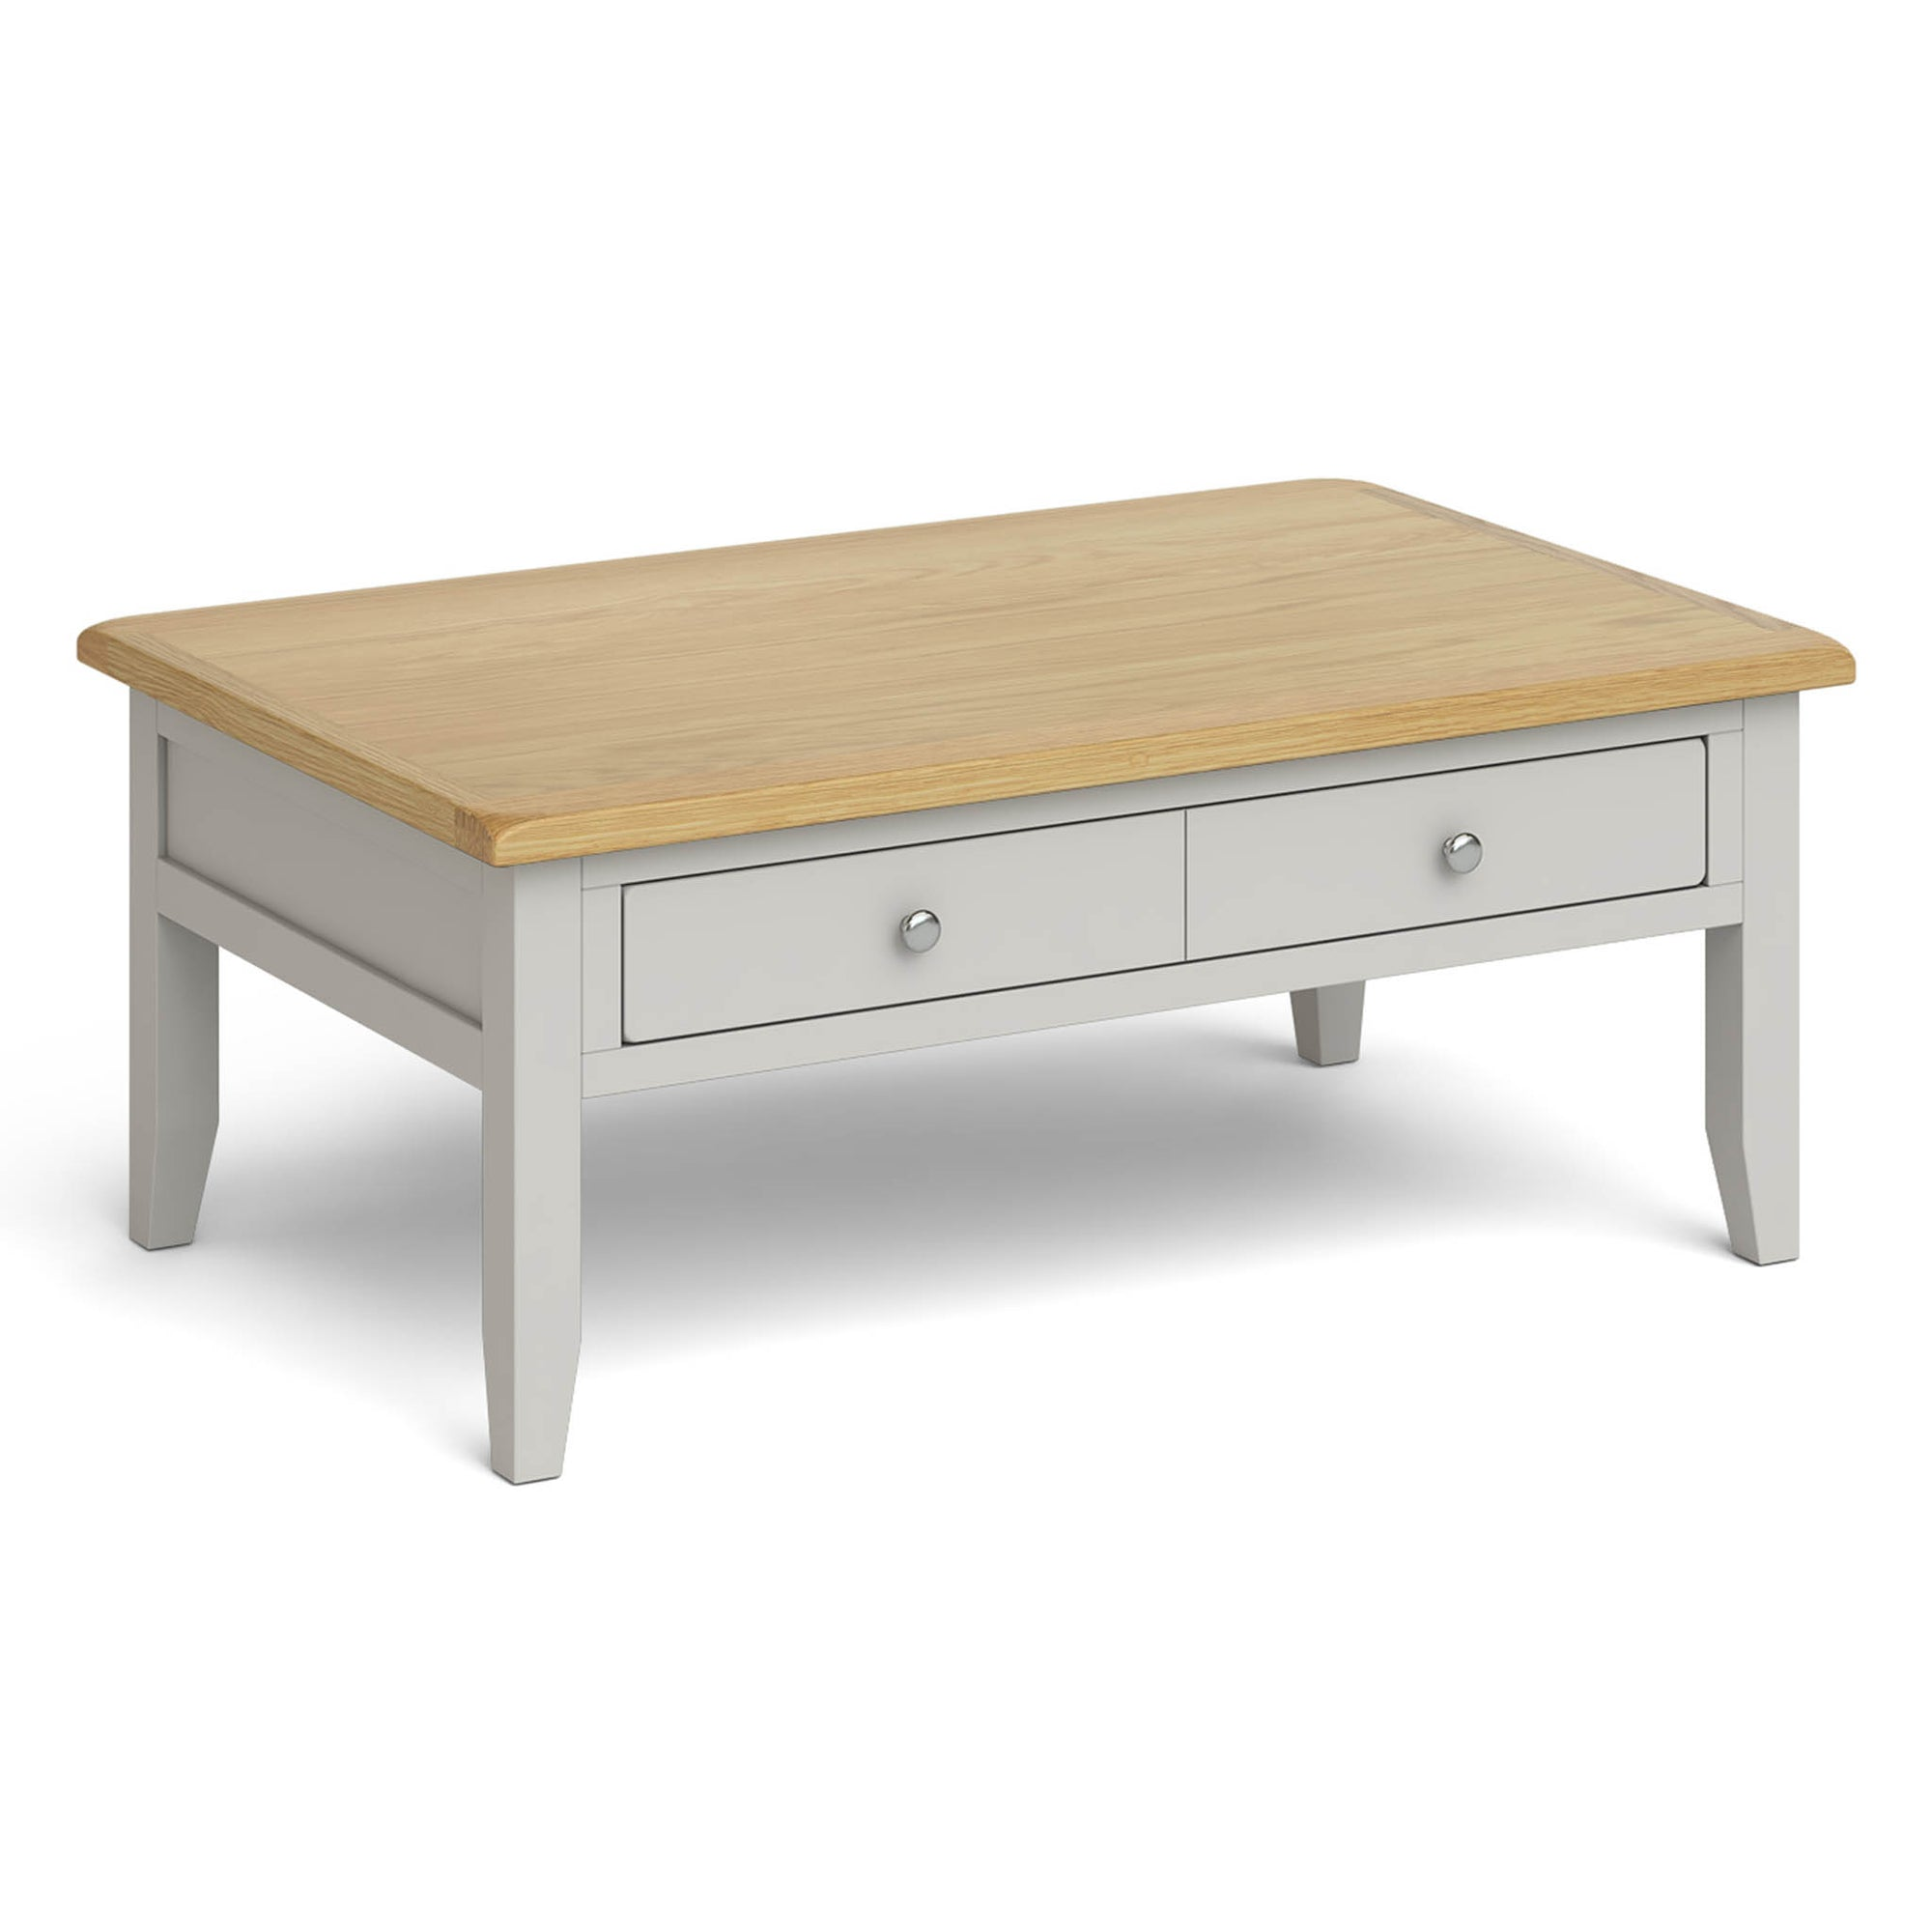 Lundy Grey Large Coffee Table by Roseland Furniture